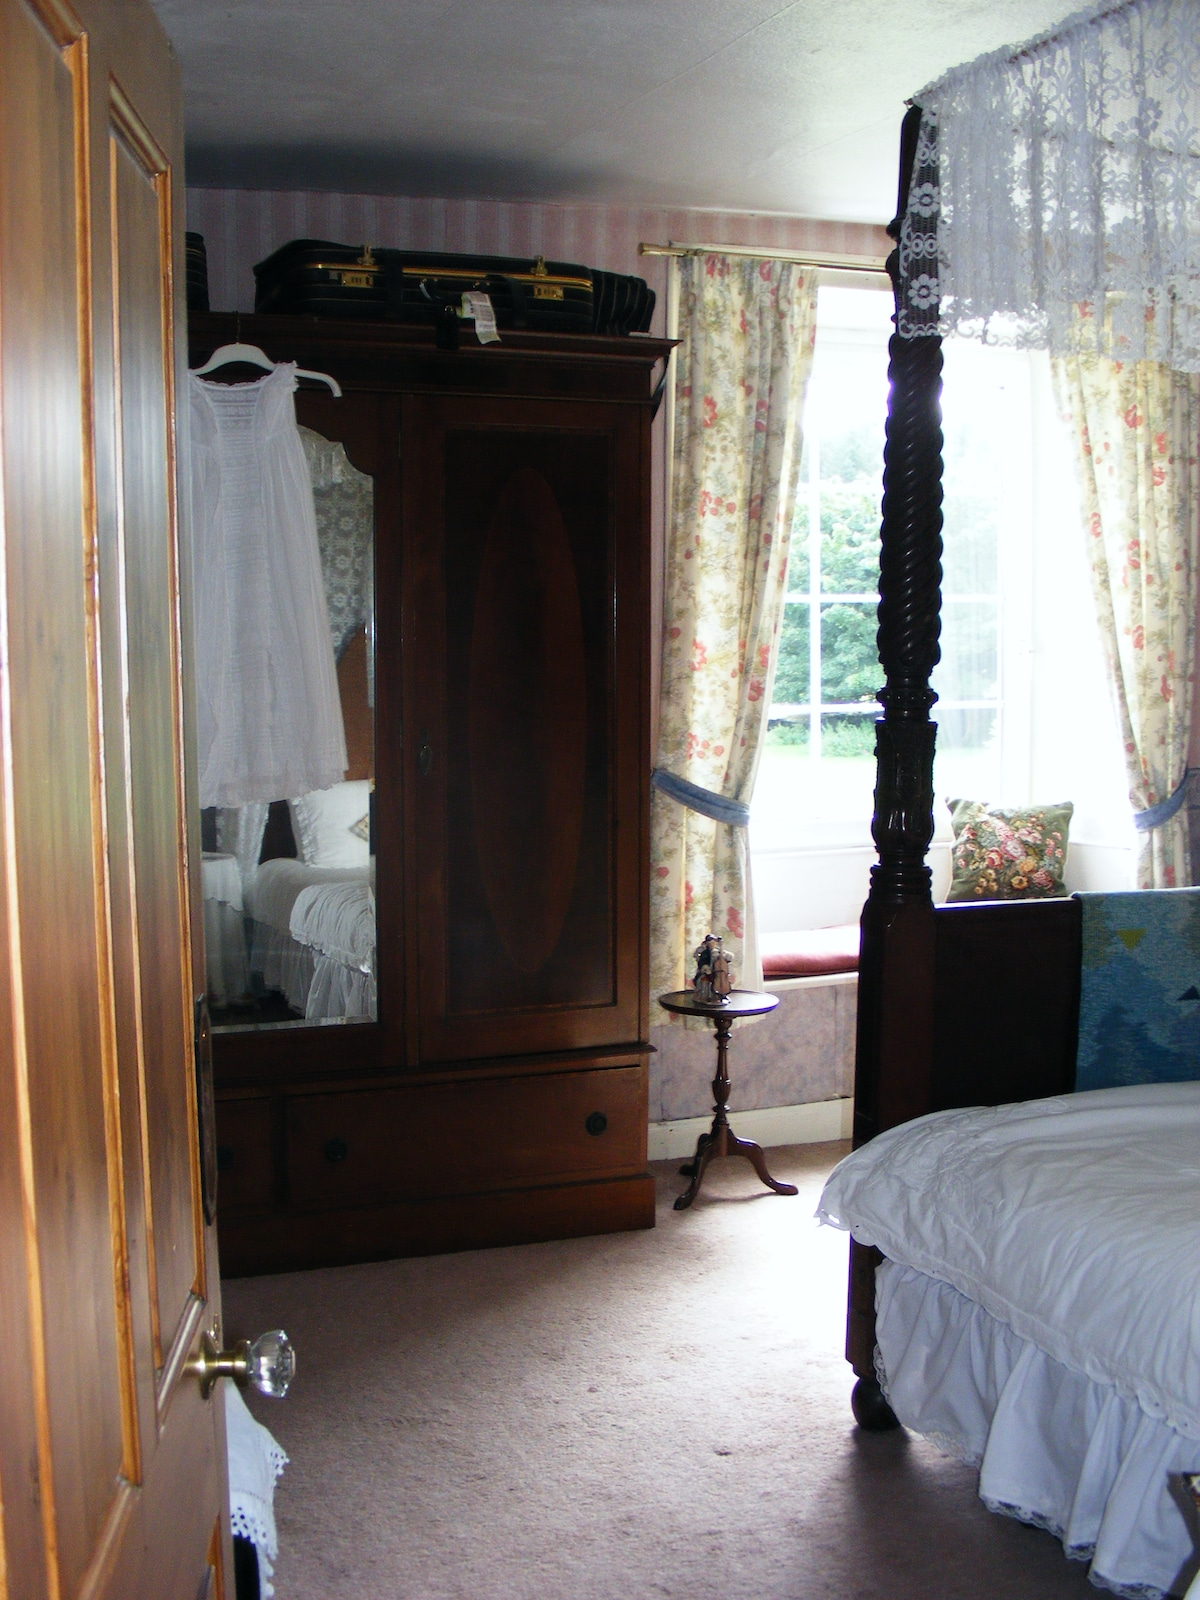 Four poster bedroom with en-suite bathroom